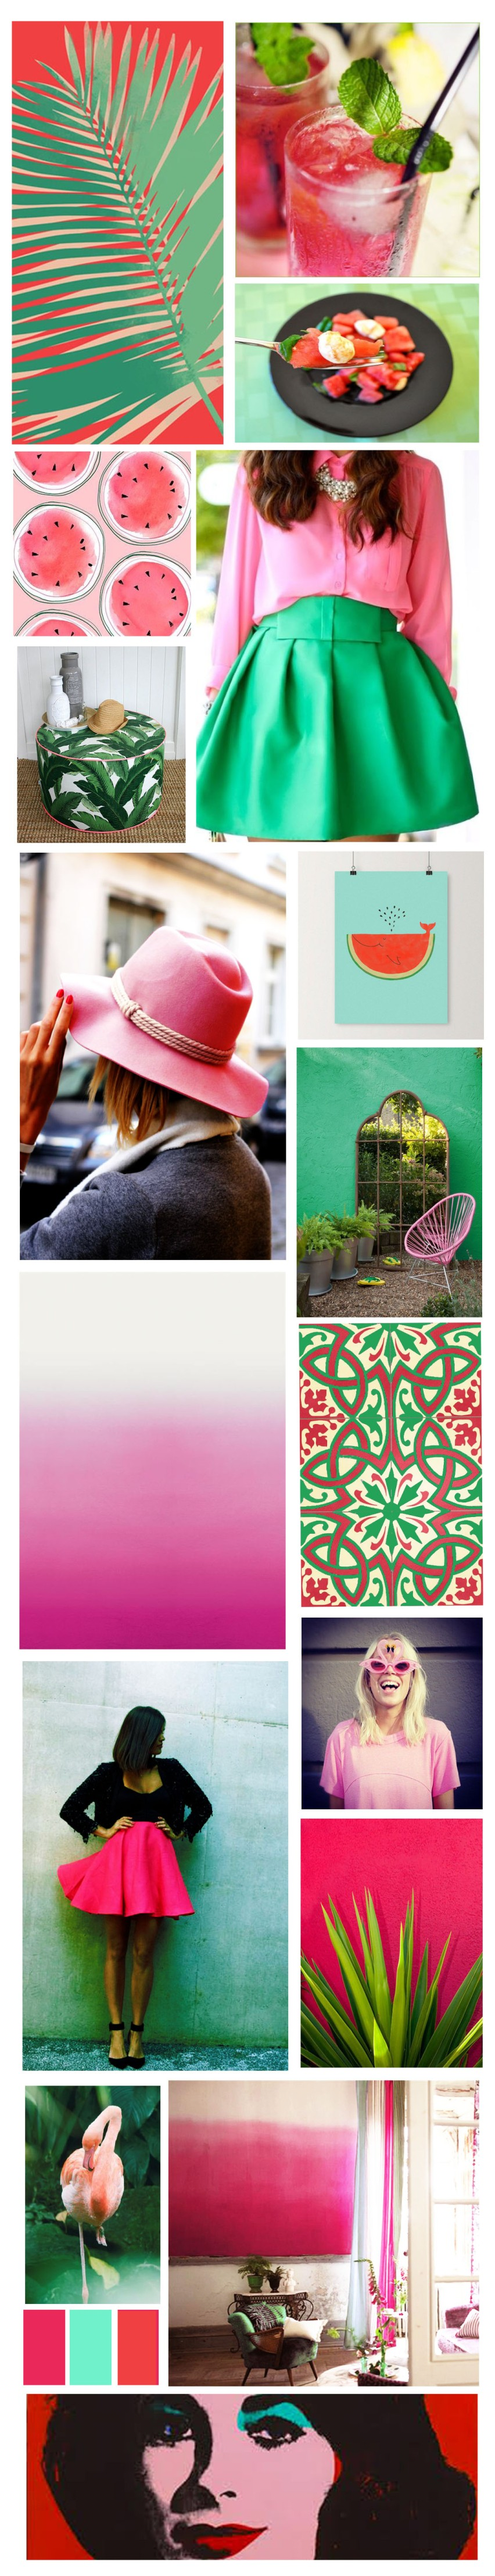 mood board watermelon copier